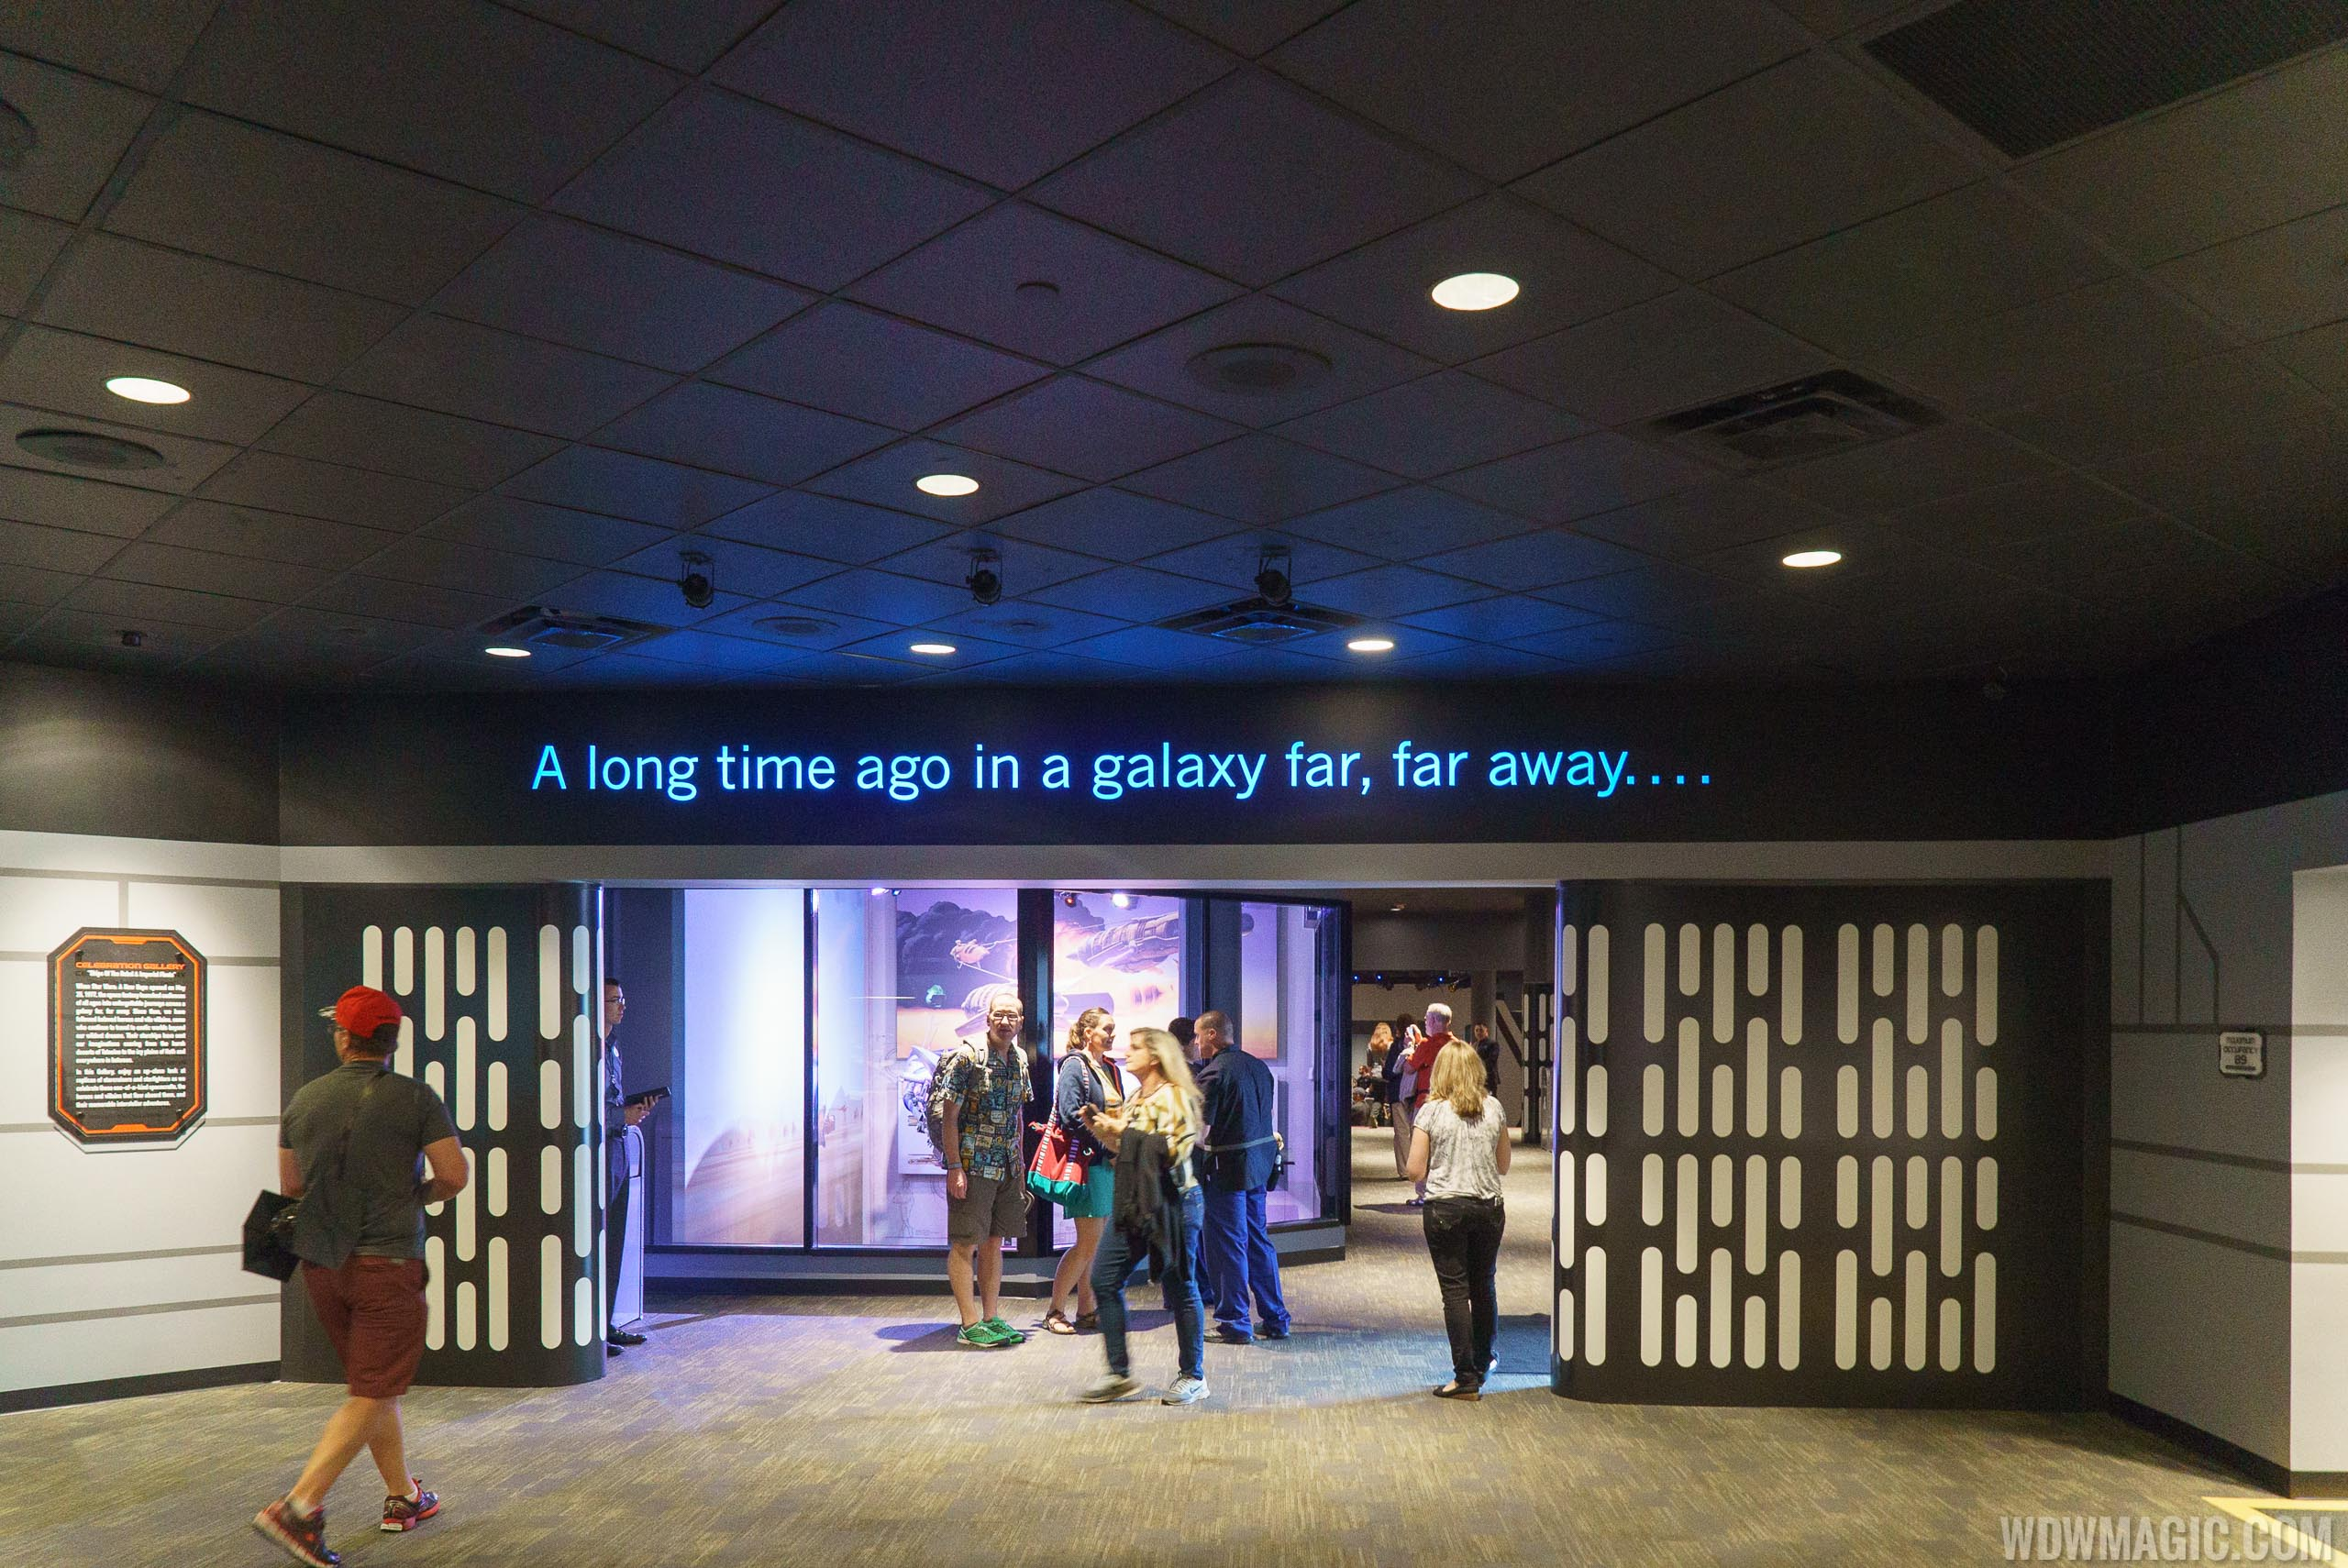 Star Wars Launch Bay - Celebration Hallway